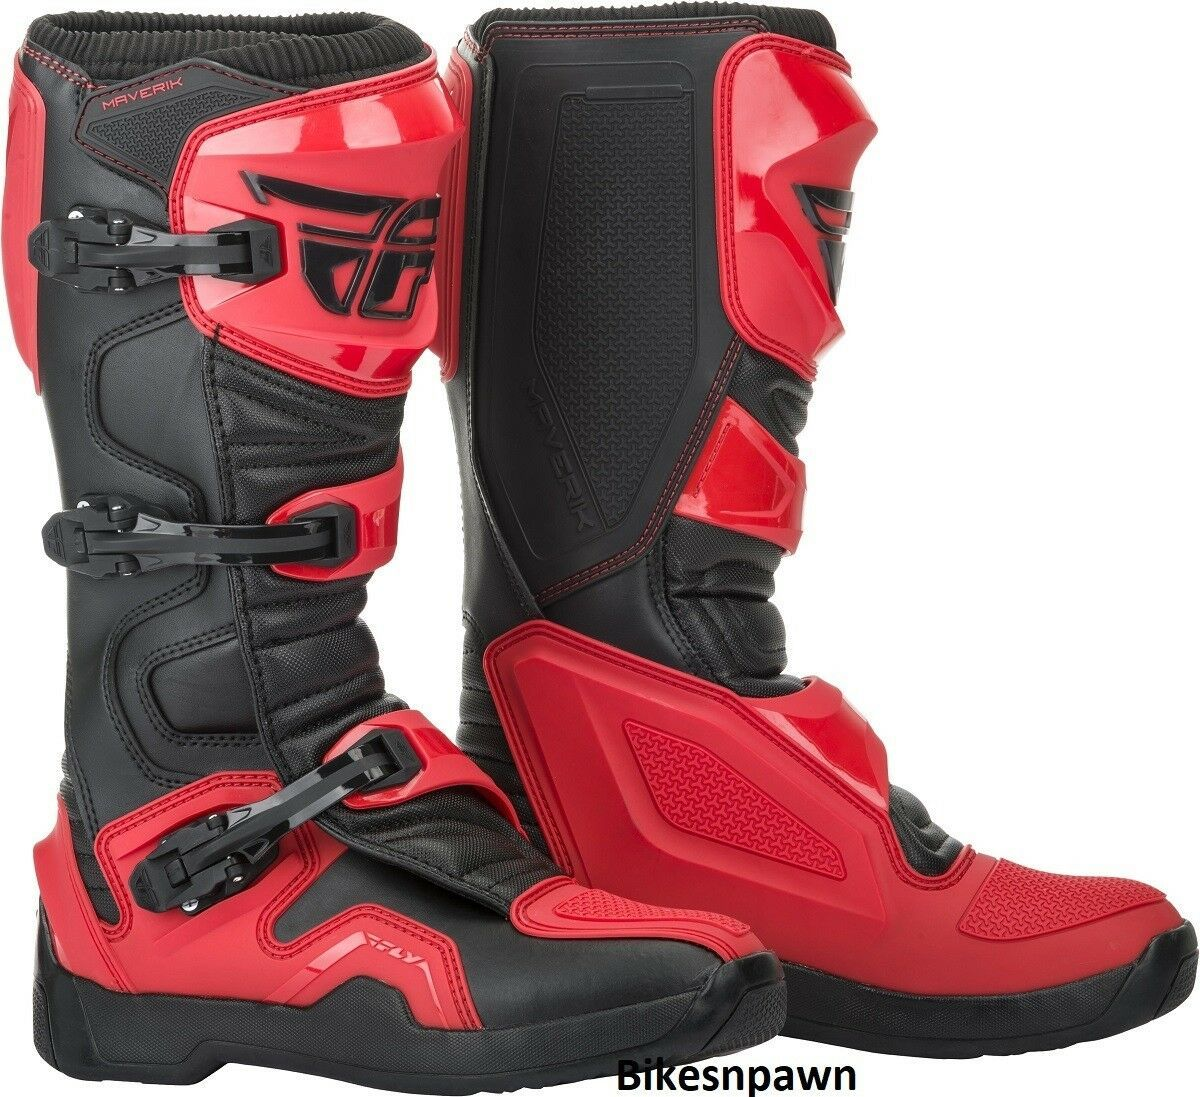 New 2019 Adult Size 9 Fly Racing Maverik Red & Black Motocross MX ATV Boots